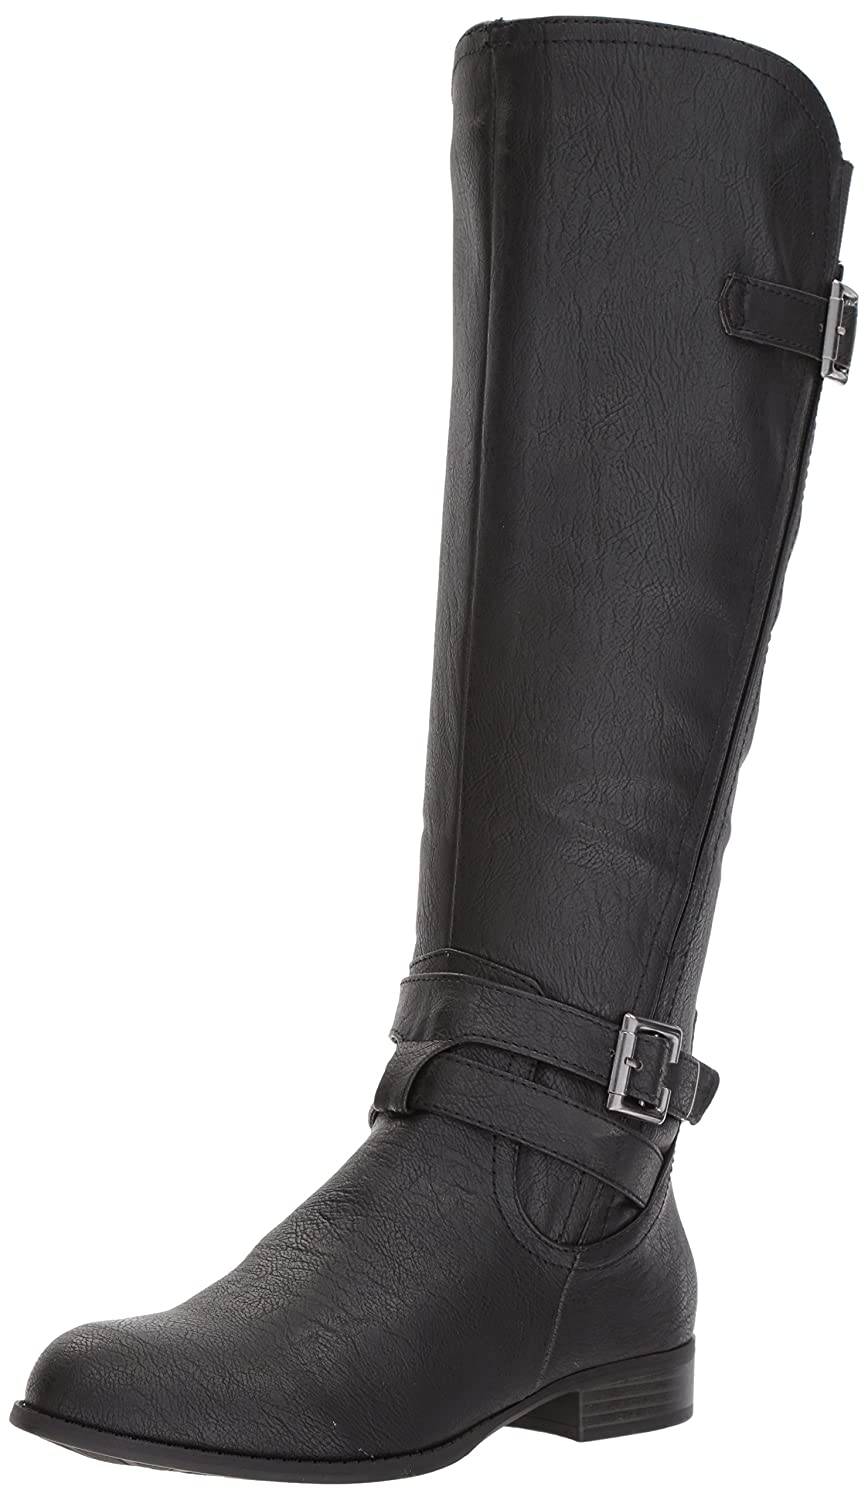 LifeStride Women's Francesca Knee High Boot B075G215H8 11 B(M) US|Black